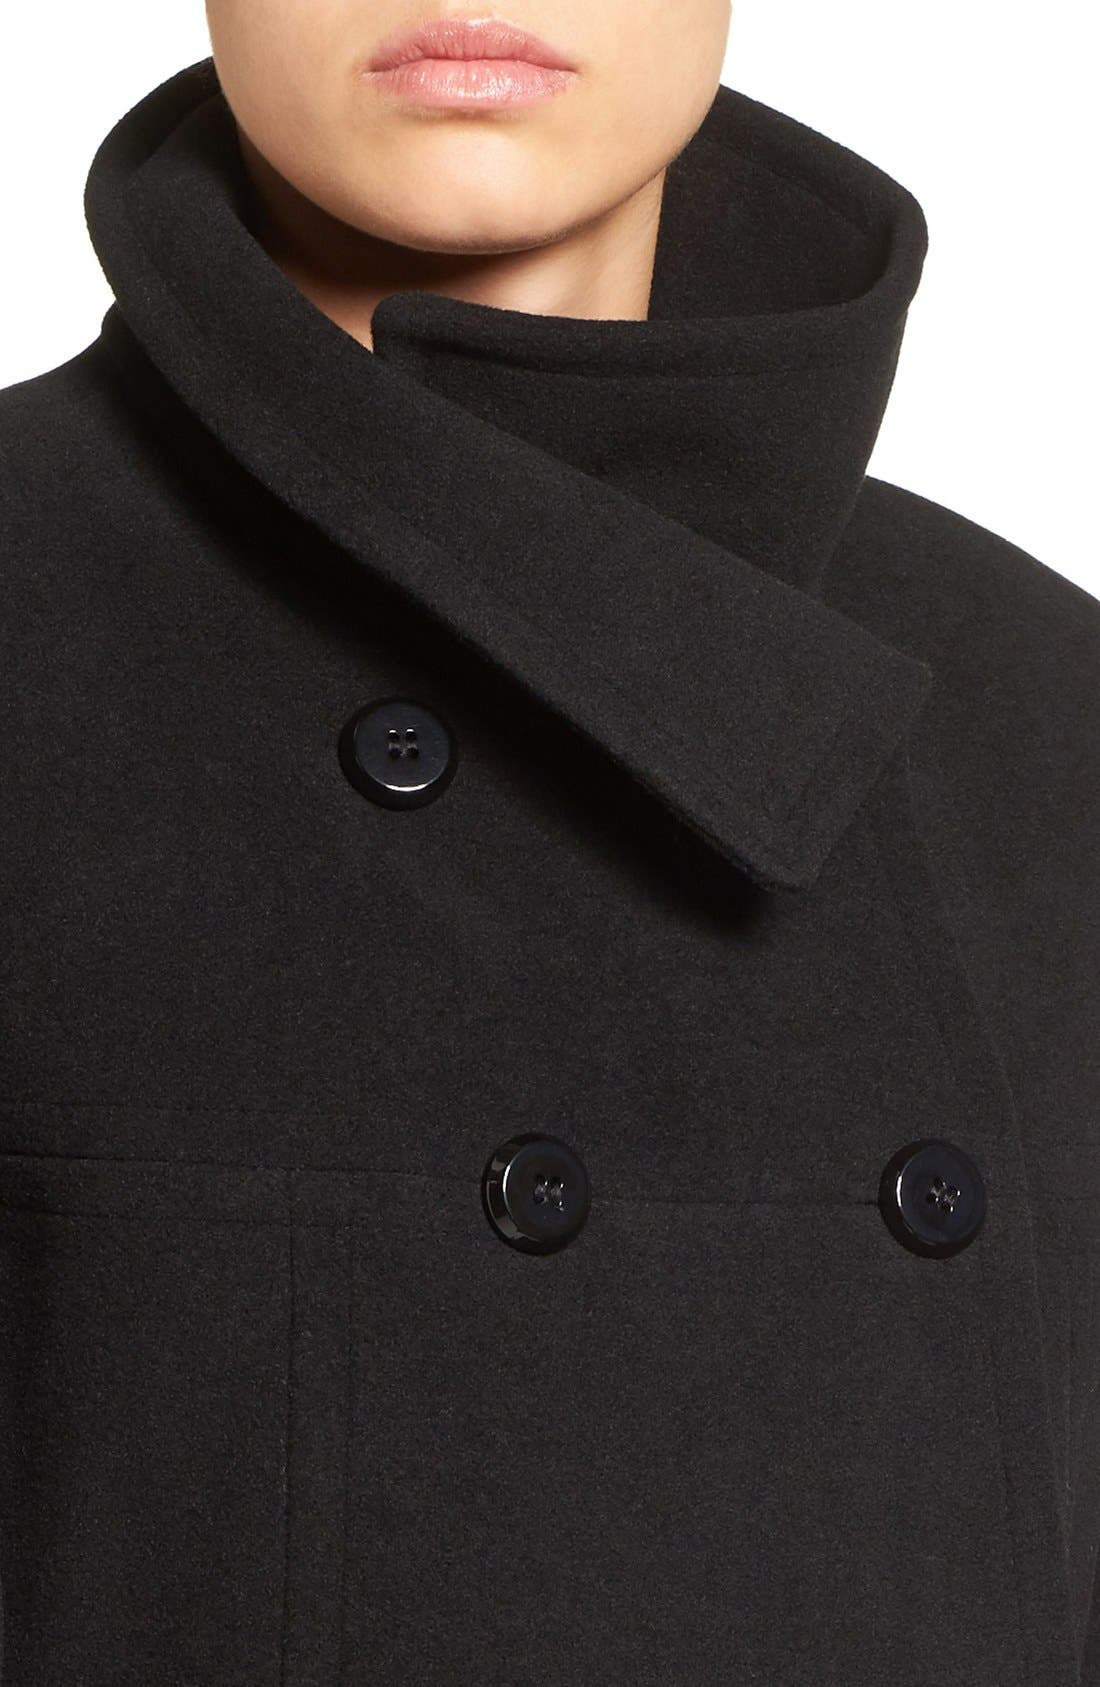 Double Breasted Coat,                             Alternate thumbnail 22, color,